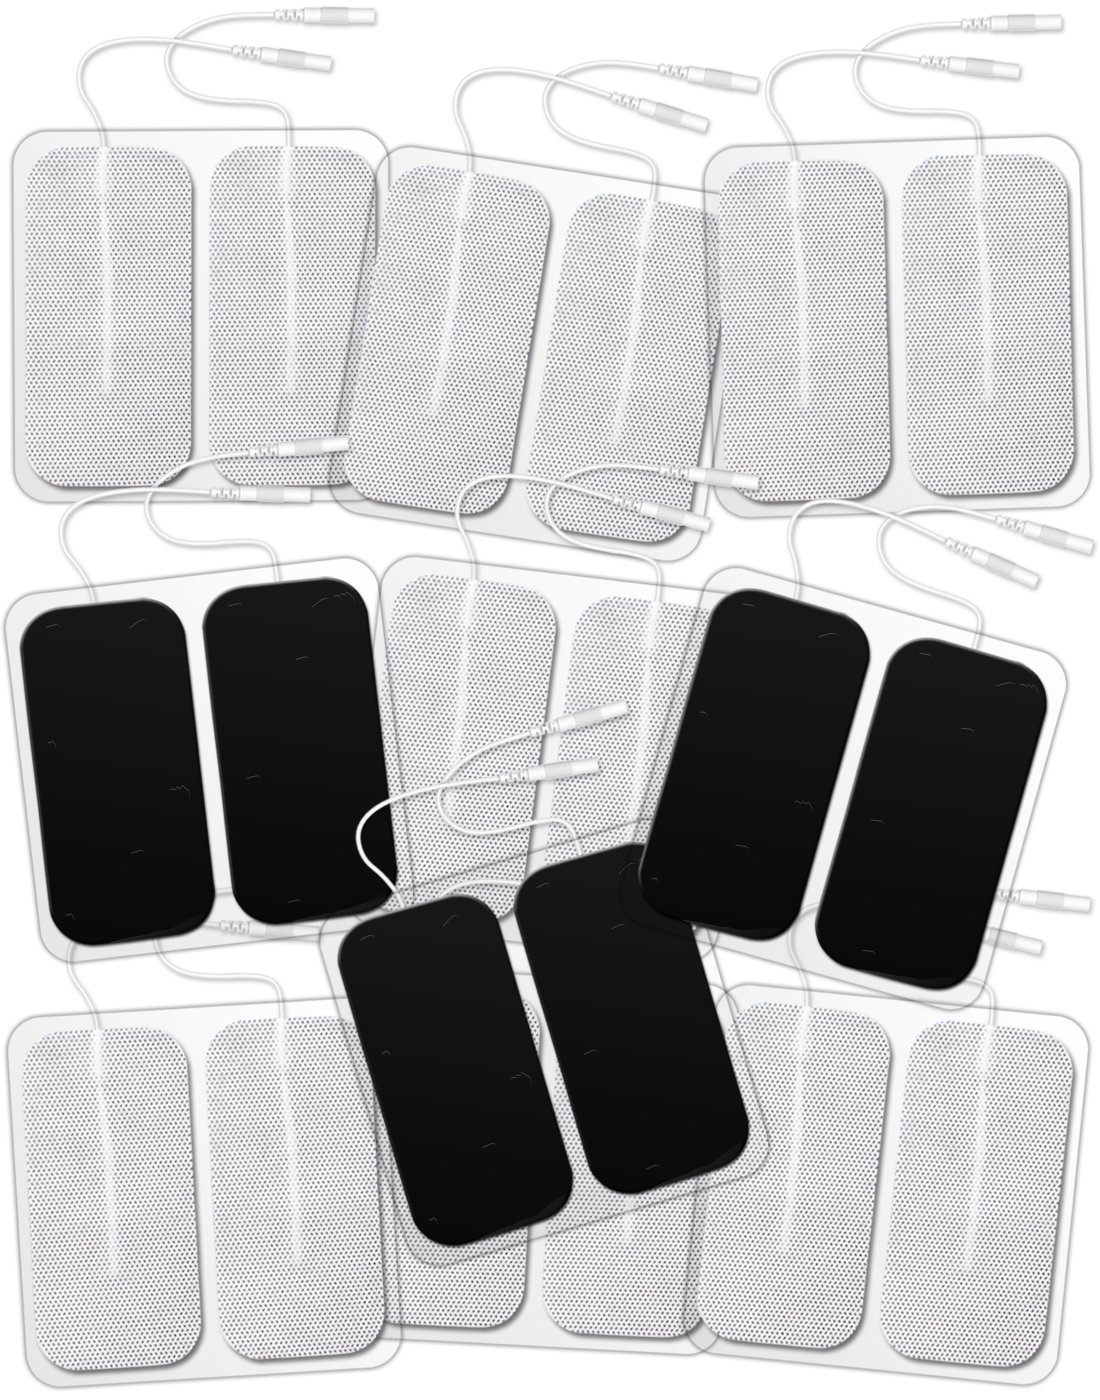 Syrtenty TENS Unit Electrodes Pads 1.5x1.5 Replacement Pads Electrode Patches For Electrotherapy 1.5 Square - 40 pack